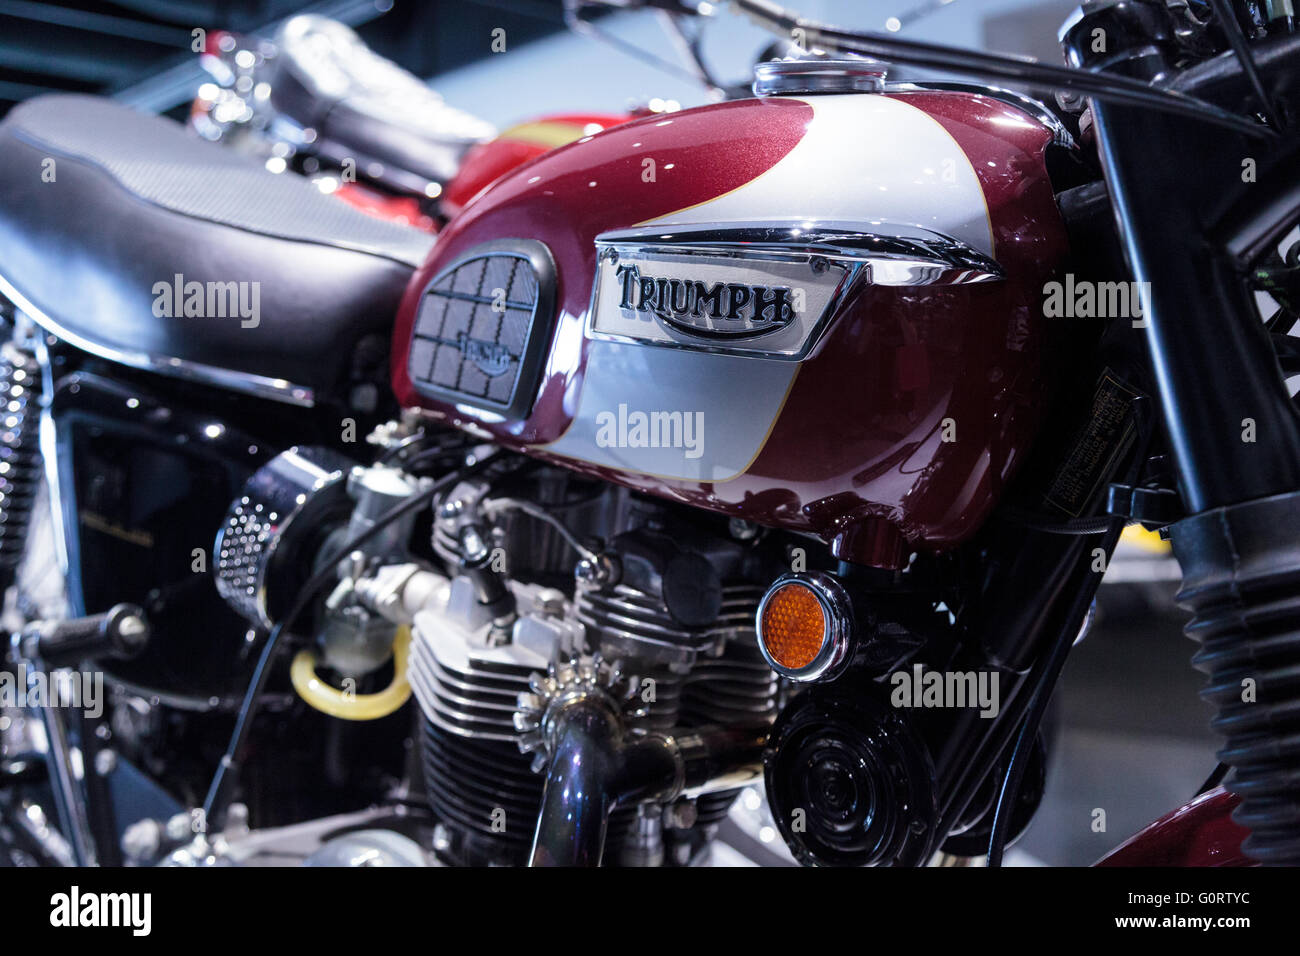 7cf15dabe6 1970 Triumph Bonneville T120RT motorcycle from the collection of Richard  Varner